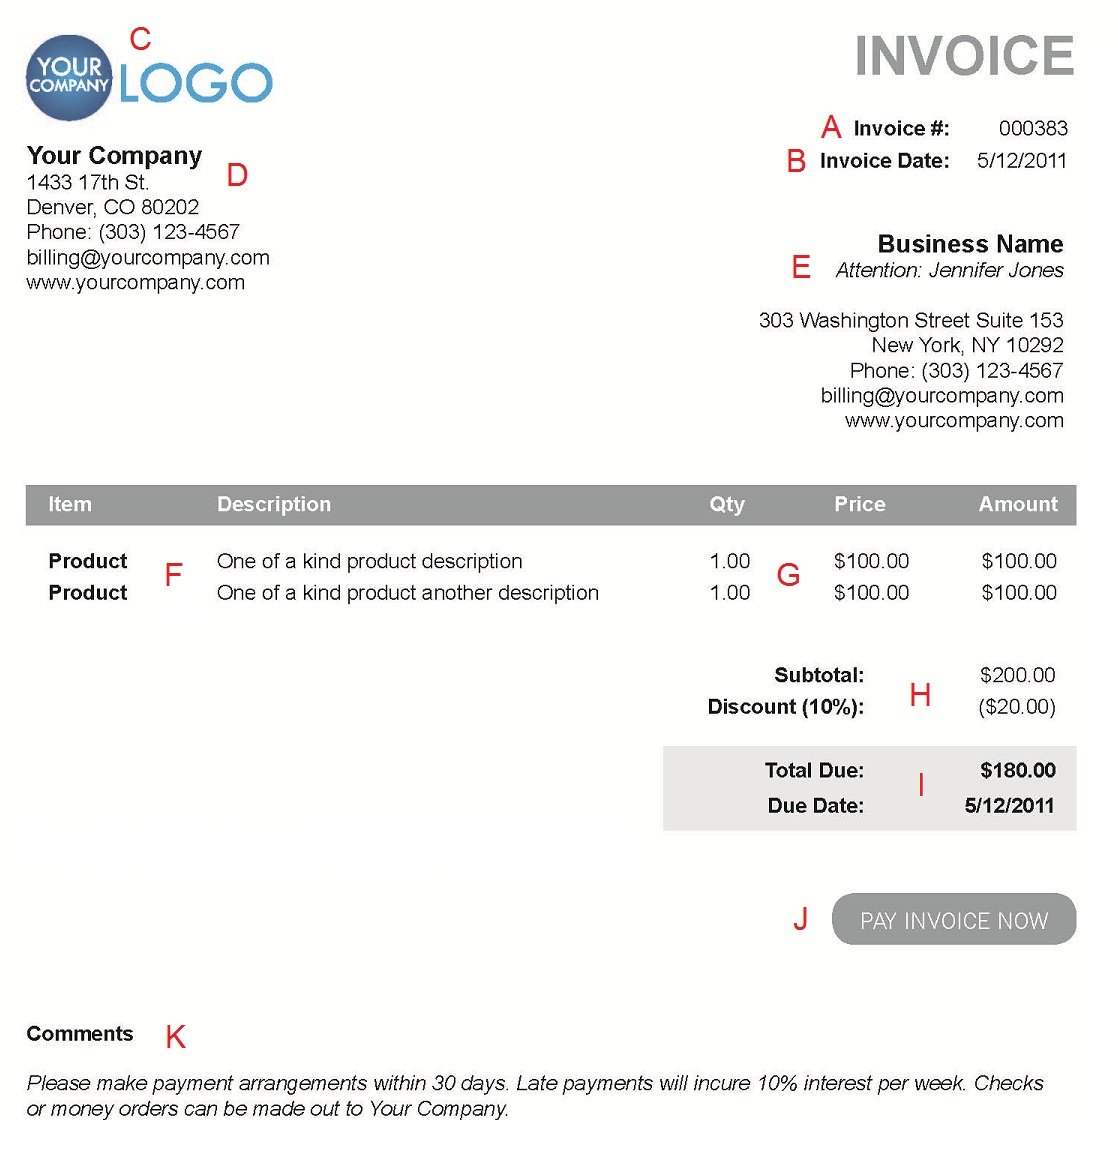 Hucareus  Unique The  Different Sections Of An Electronic Payment Invoice With Gorgeous A  With Astonishing Plumber Invoice Template Also Word Templates For Invoices In Addition Drupal Commerce Invoice And Sample Invoice Payment Terms As Well As What Is Invoice Processing Additionally Invoice Photography From Paysimplecom With Hucareus  Gorgeous The  Different Sections Of An Electronic Payment Invoice With Astonishing A  And Unique Plumber Invoice Template Also Word Templates For Invoices In Addition Drupal Commerce Invoice From Paysimplecom